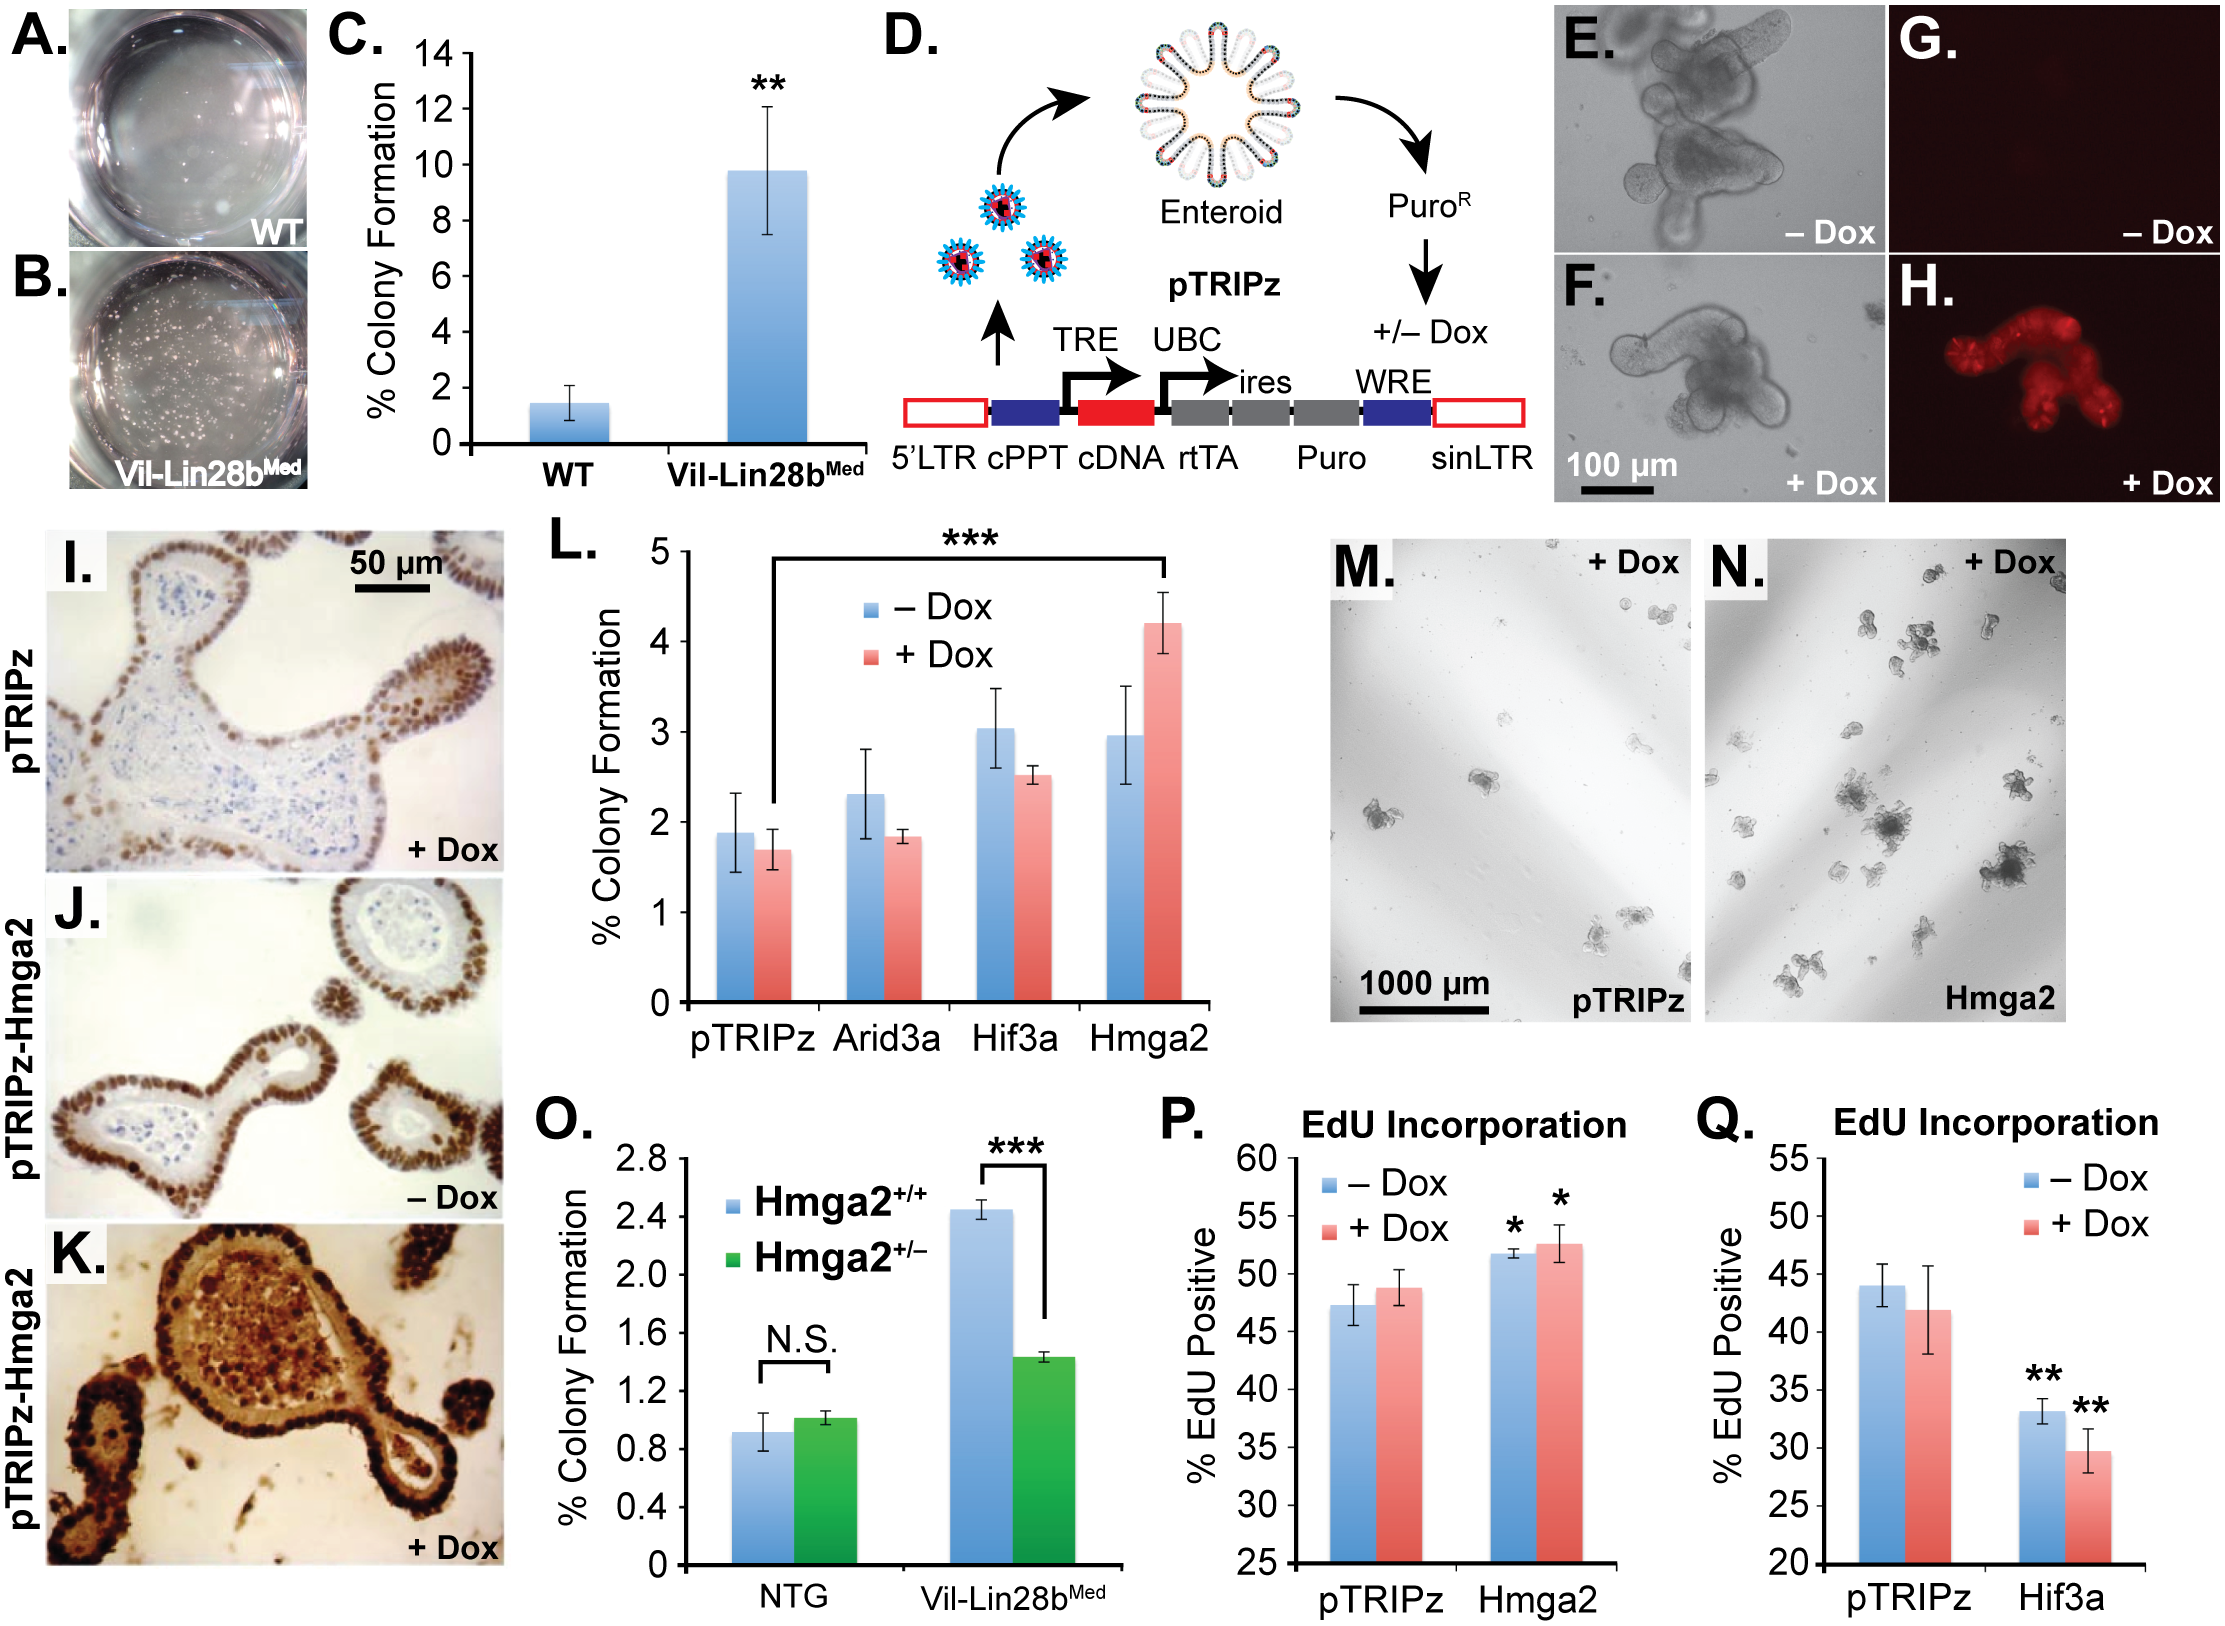 Hmga2 mediates Lin28b effects on stem cell colony formation and enteroid proliferation.